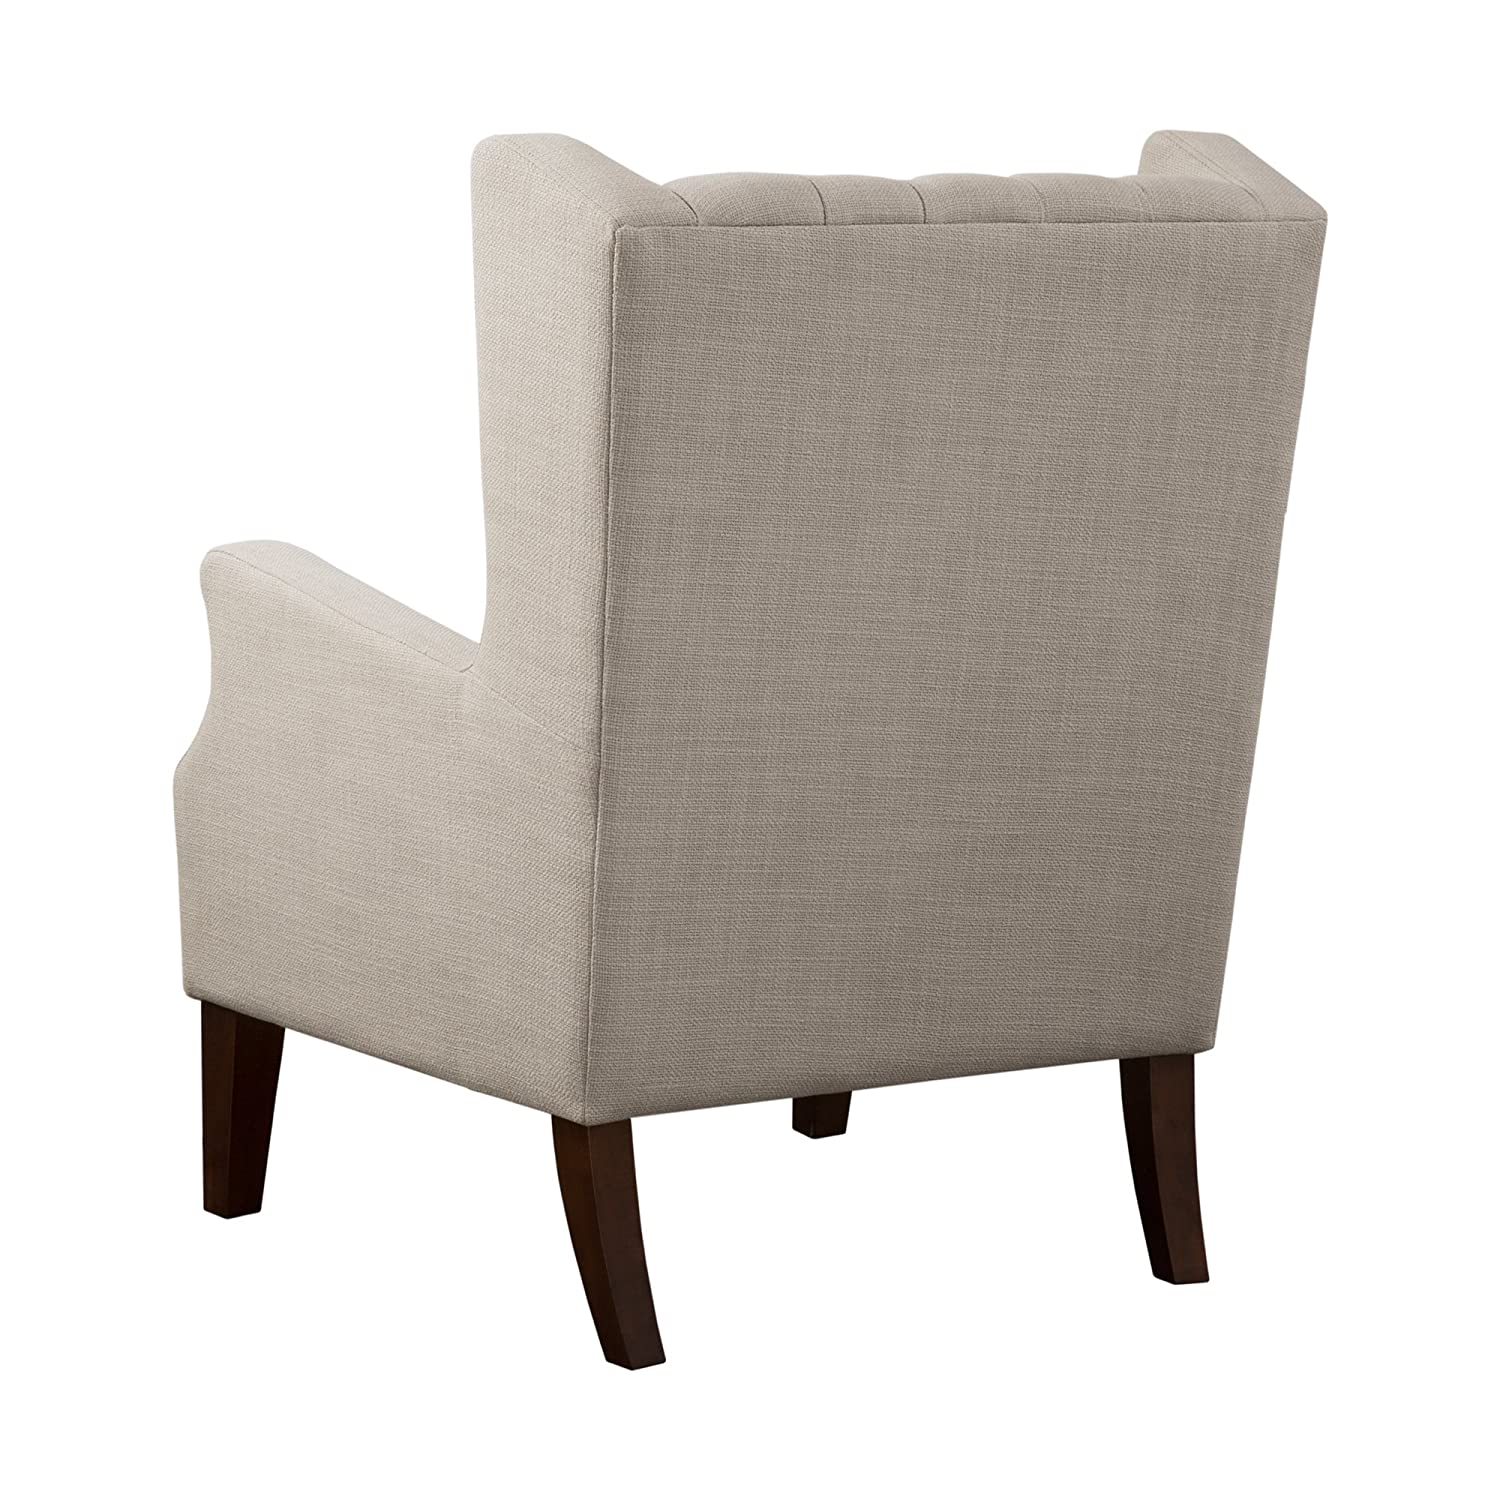 Madison park maxwell accent chairs hardwood faux linen living room chairs khaki classic elegant style living room sofa furniture 1 piece button